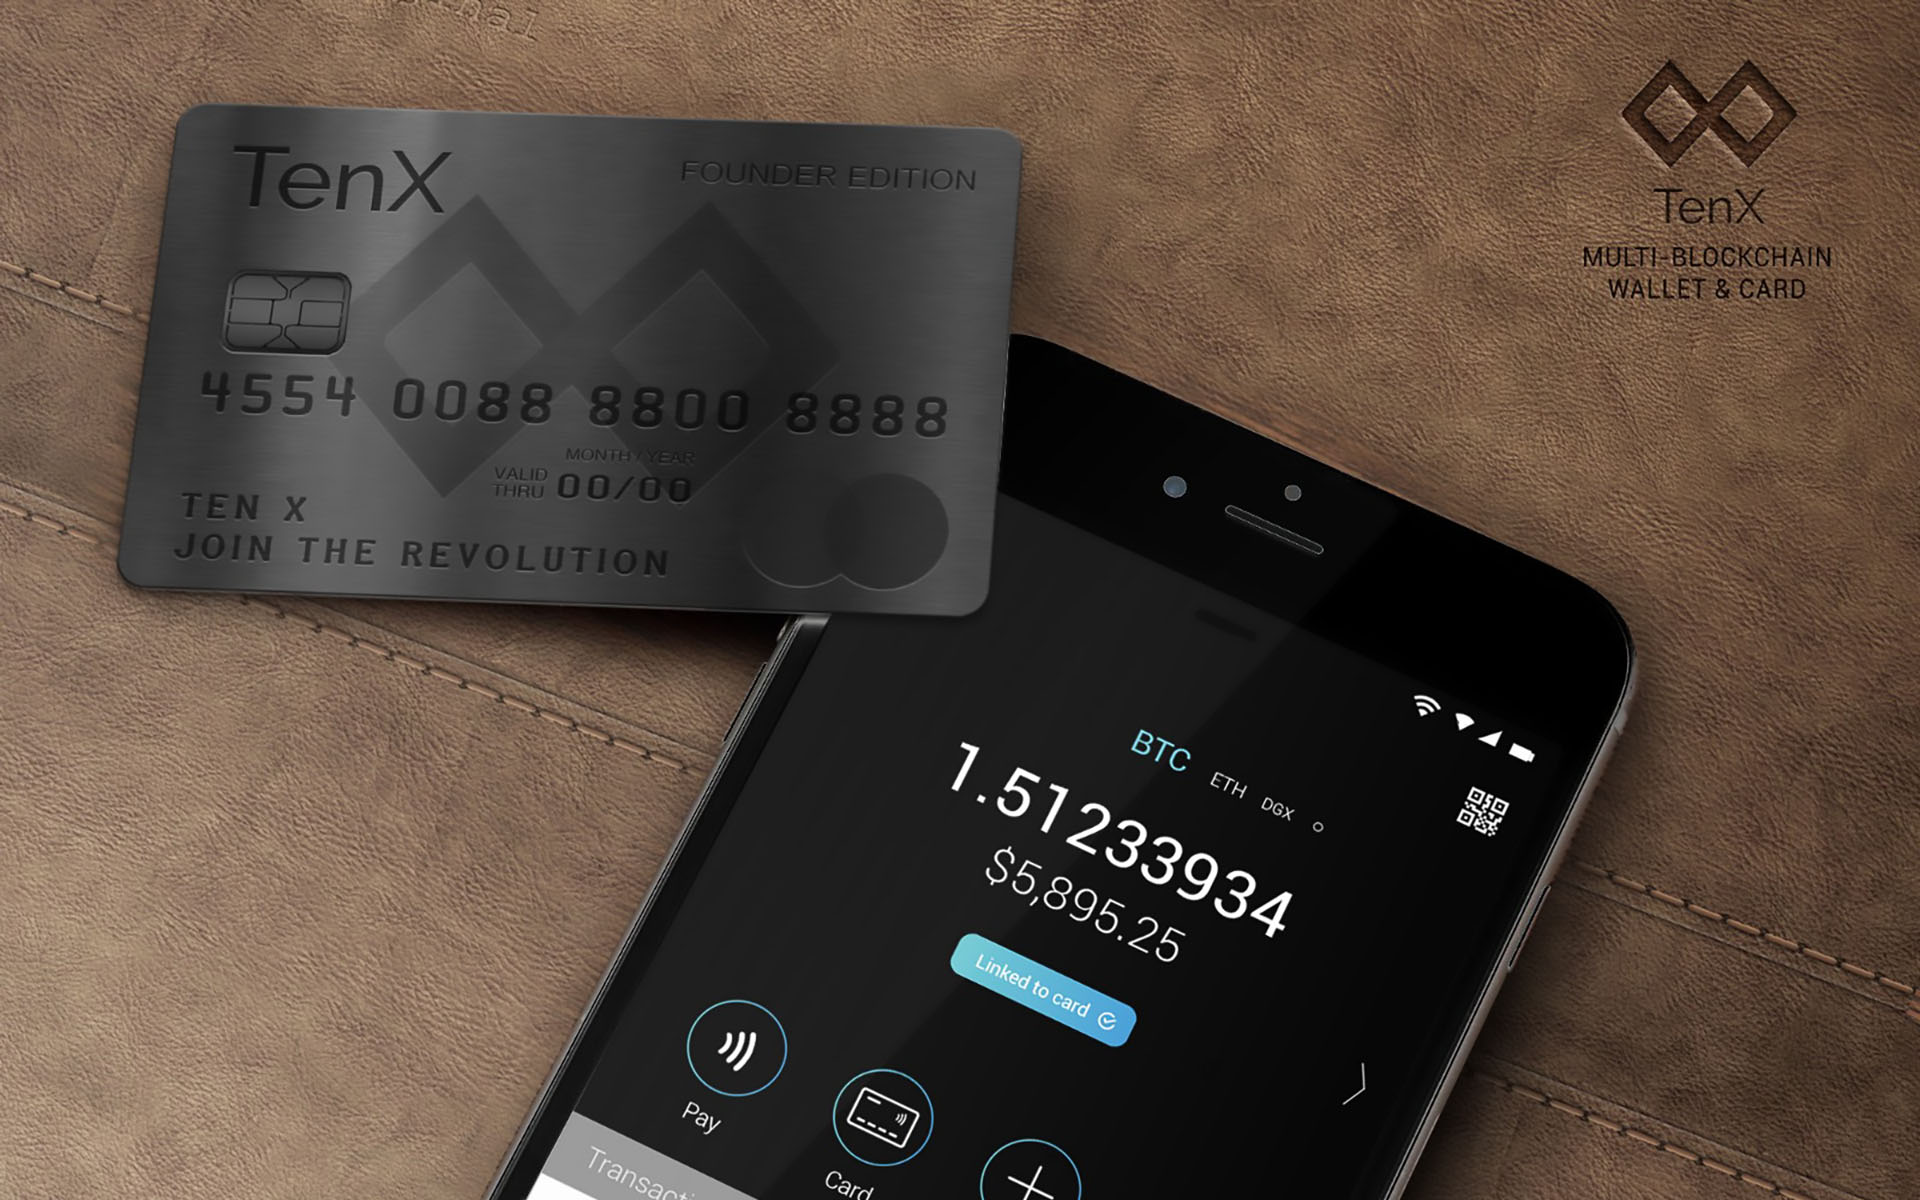 TenX raises $34 million in 7 minutes